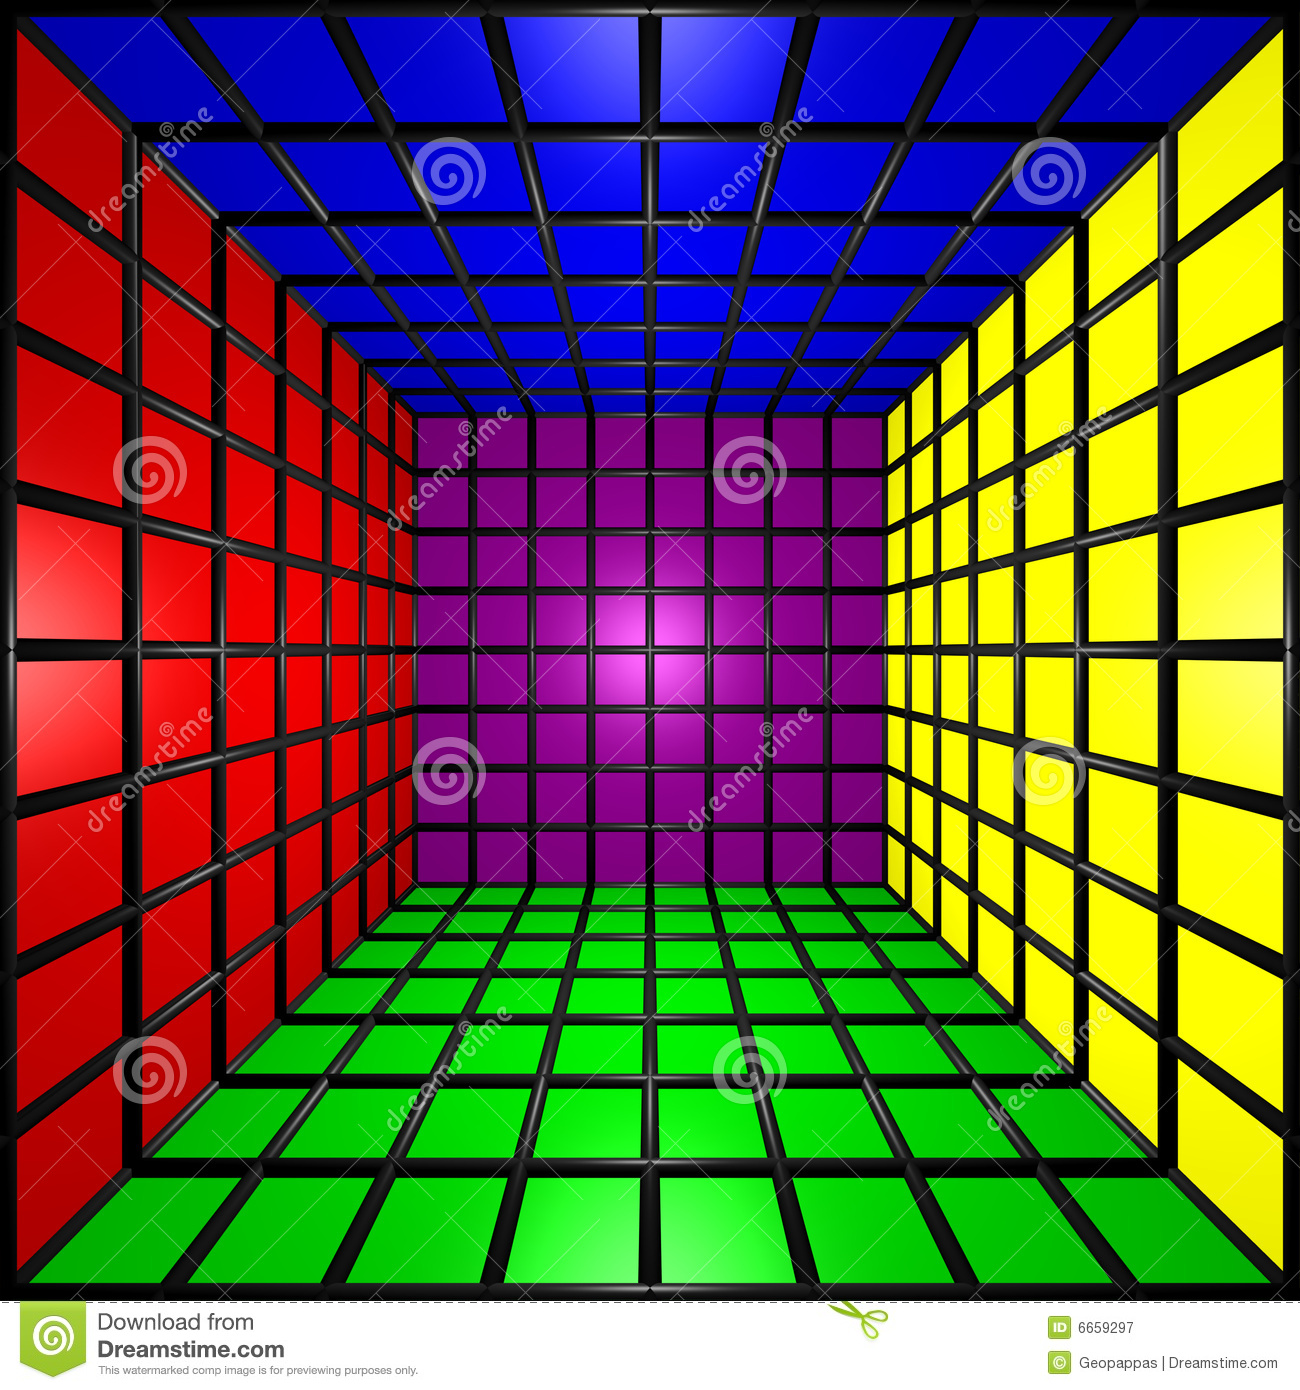 Rainbow R Room: Colorful 3D Cube W/ Grid Stock Illustration. Image Of